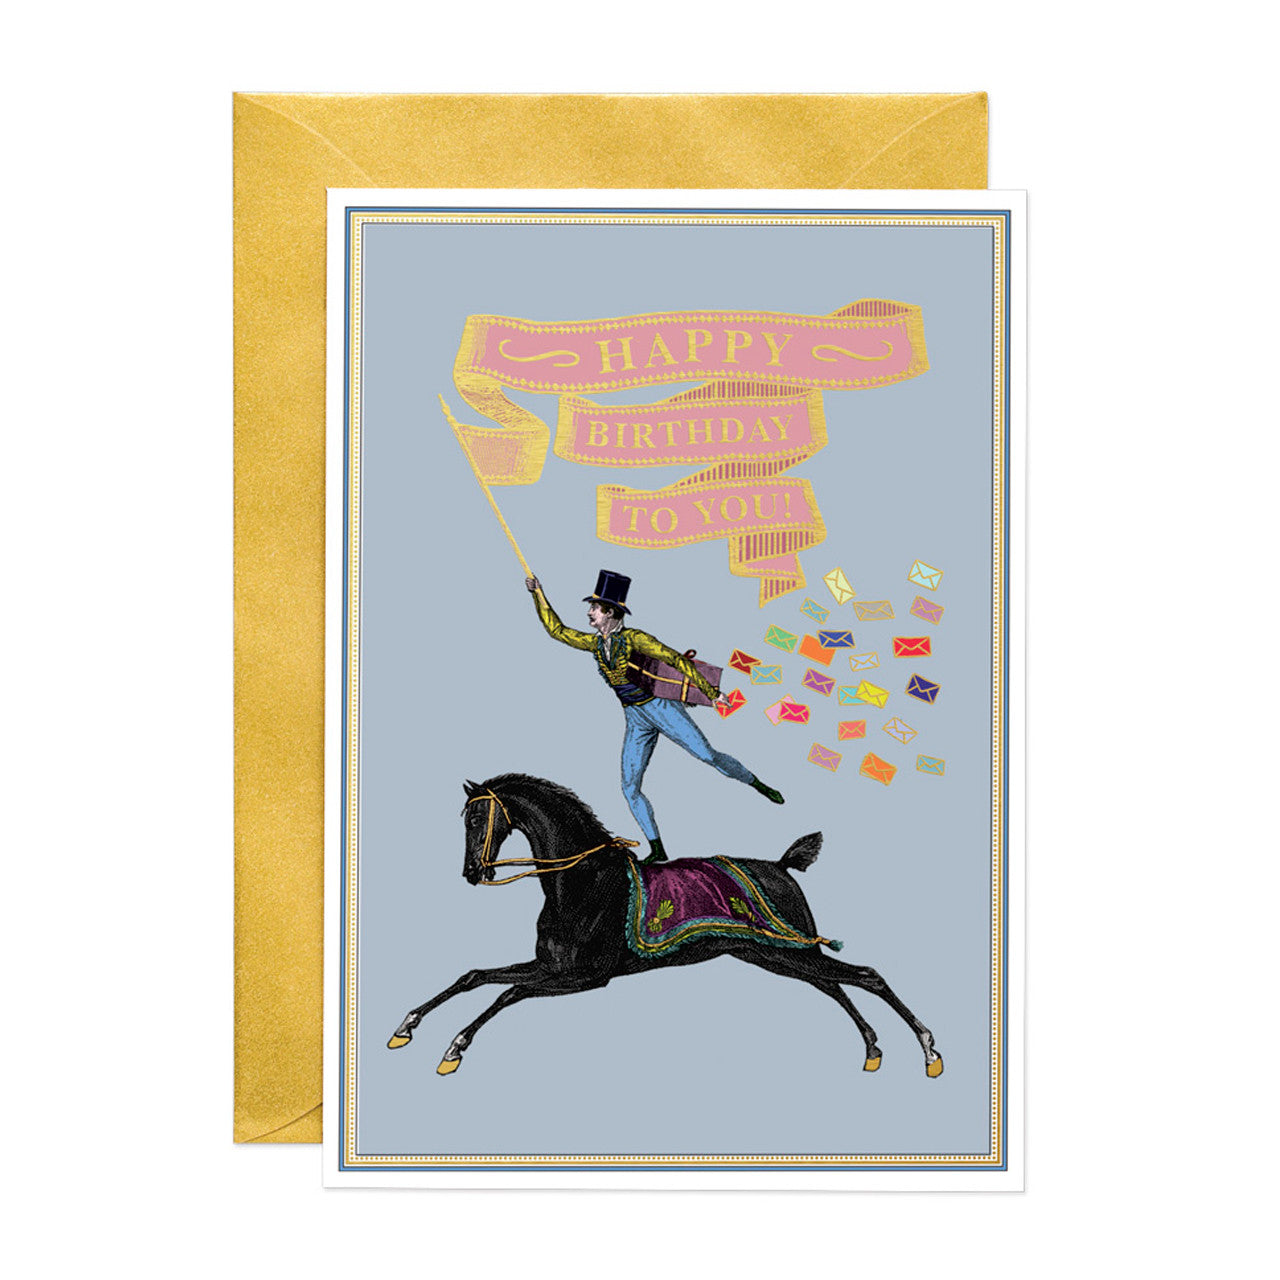 Happy Birthday Rider (LARGE) Greeting Card (PACK OF 6)